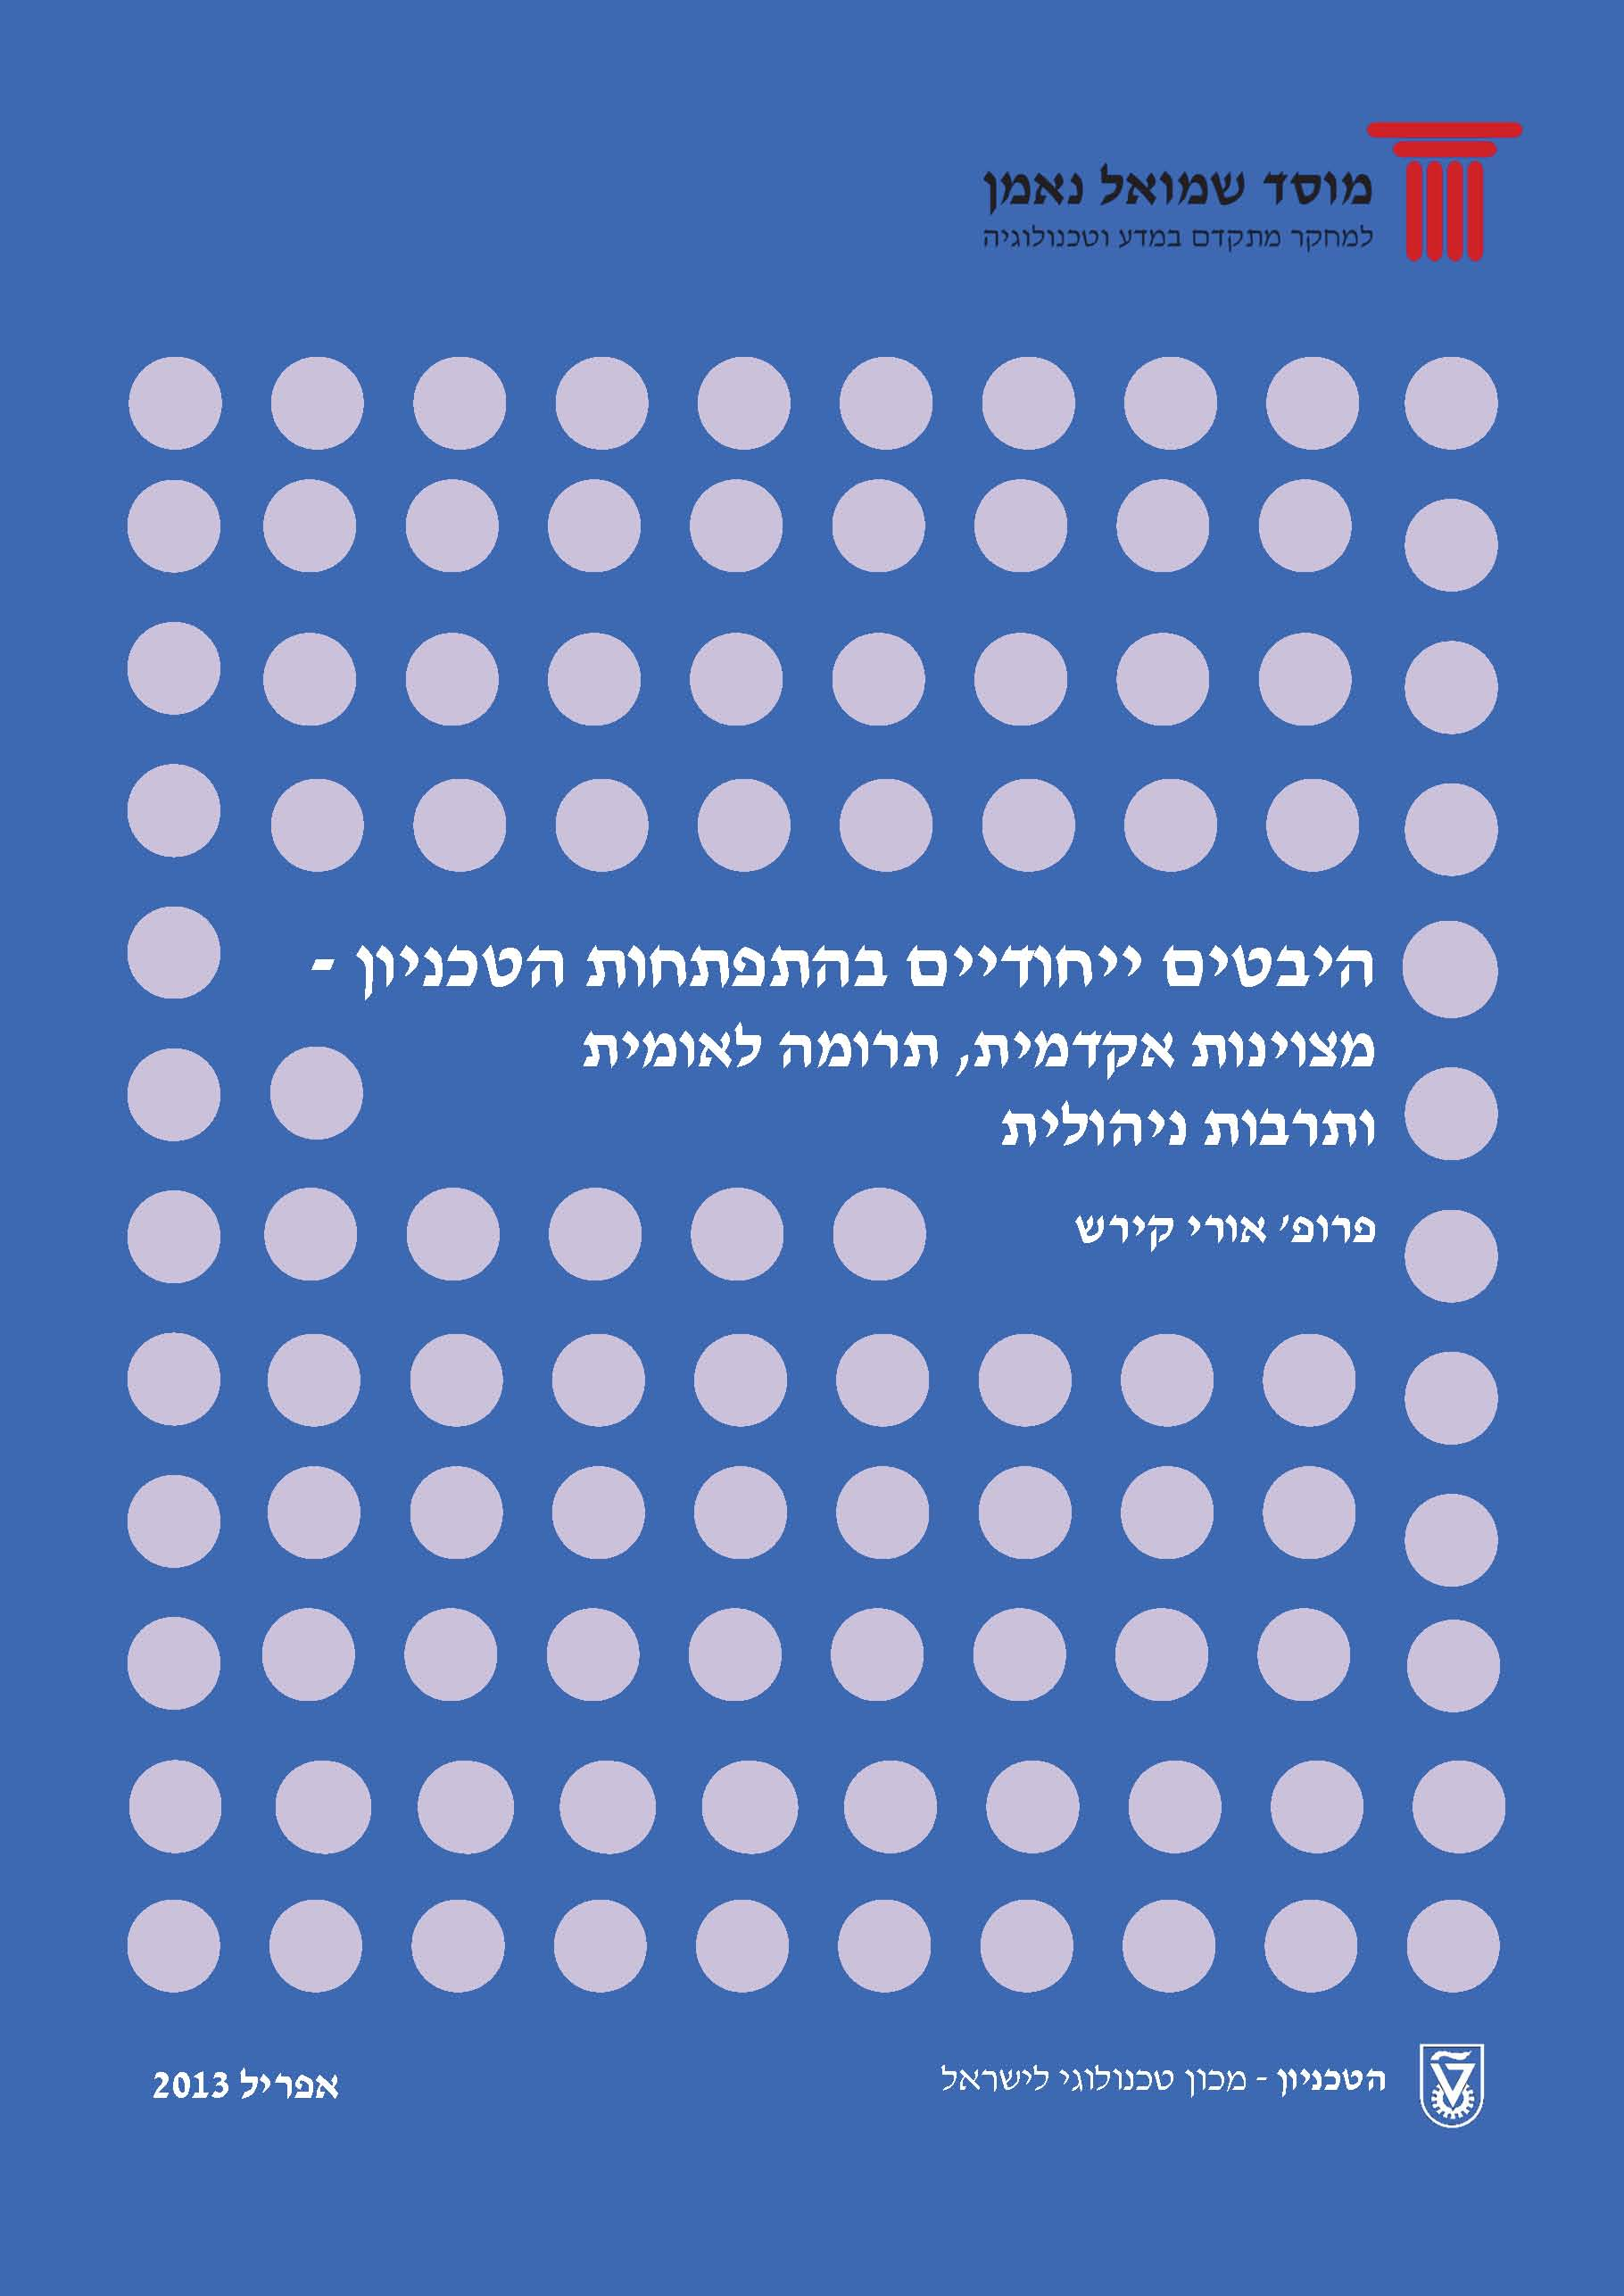 Unique Characteristics in the Development of the Technion – Academic Excellence, National Contribution, Managerial Culture